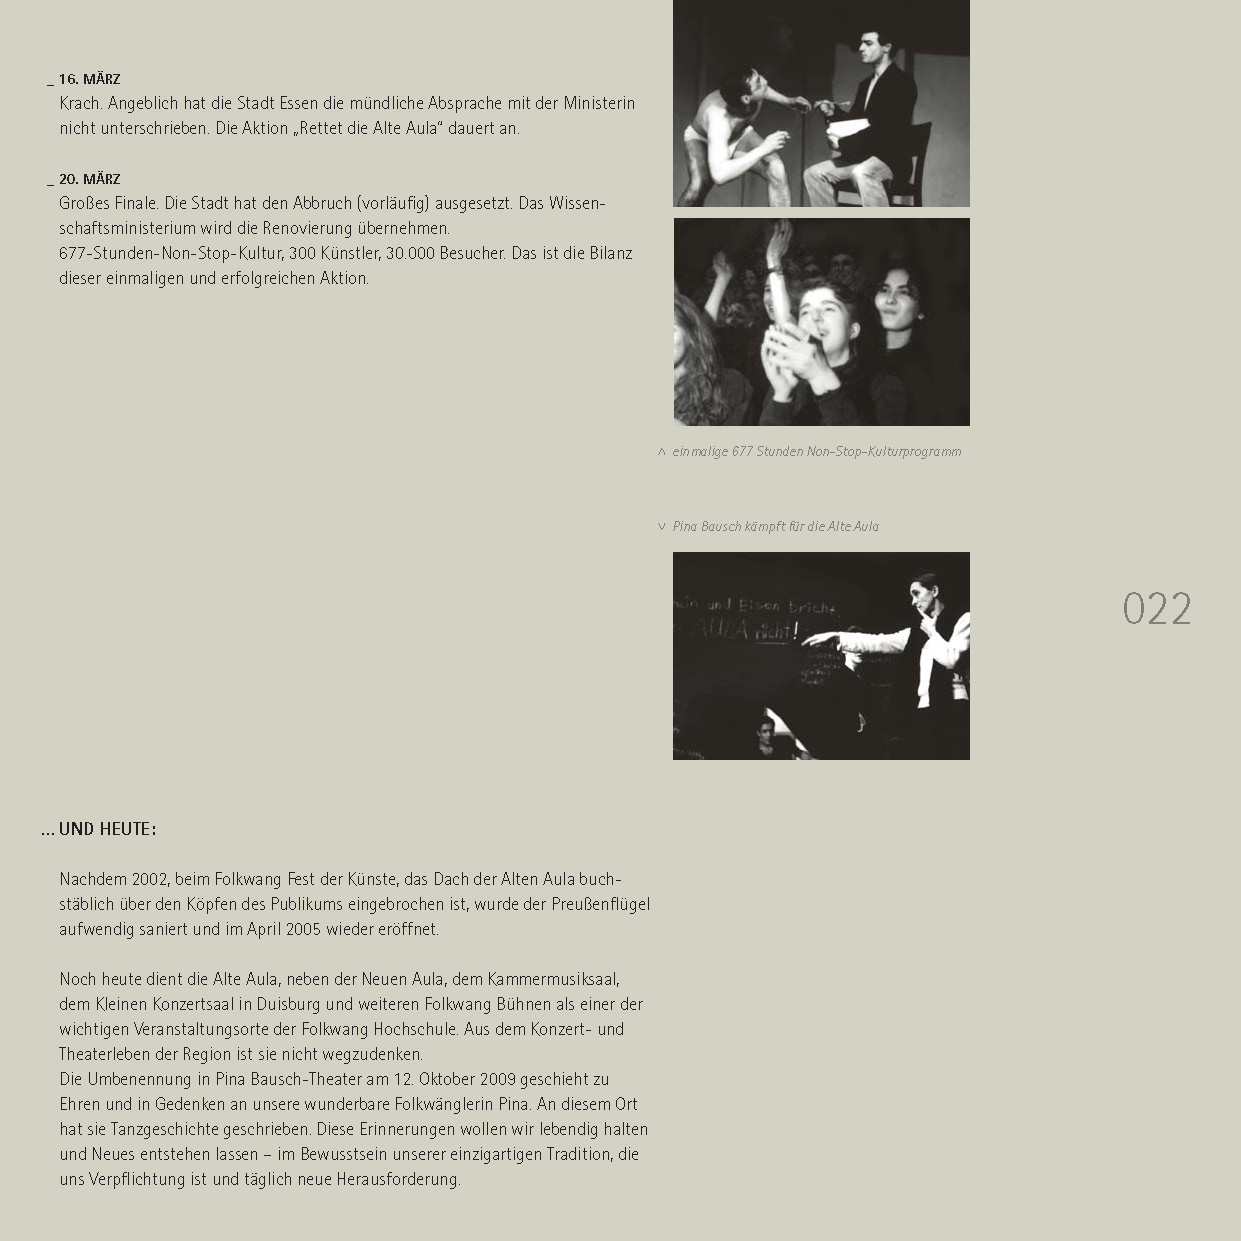 Booklet Pinabauschth22